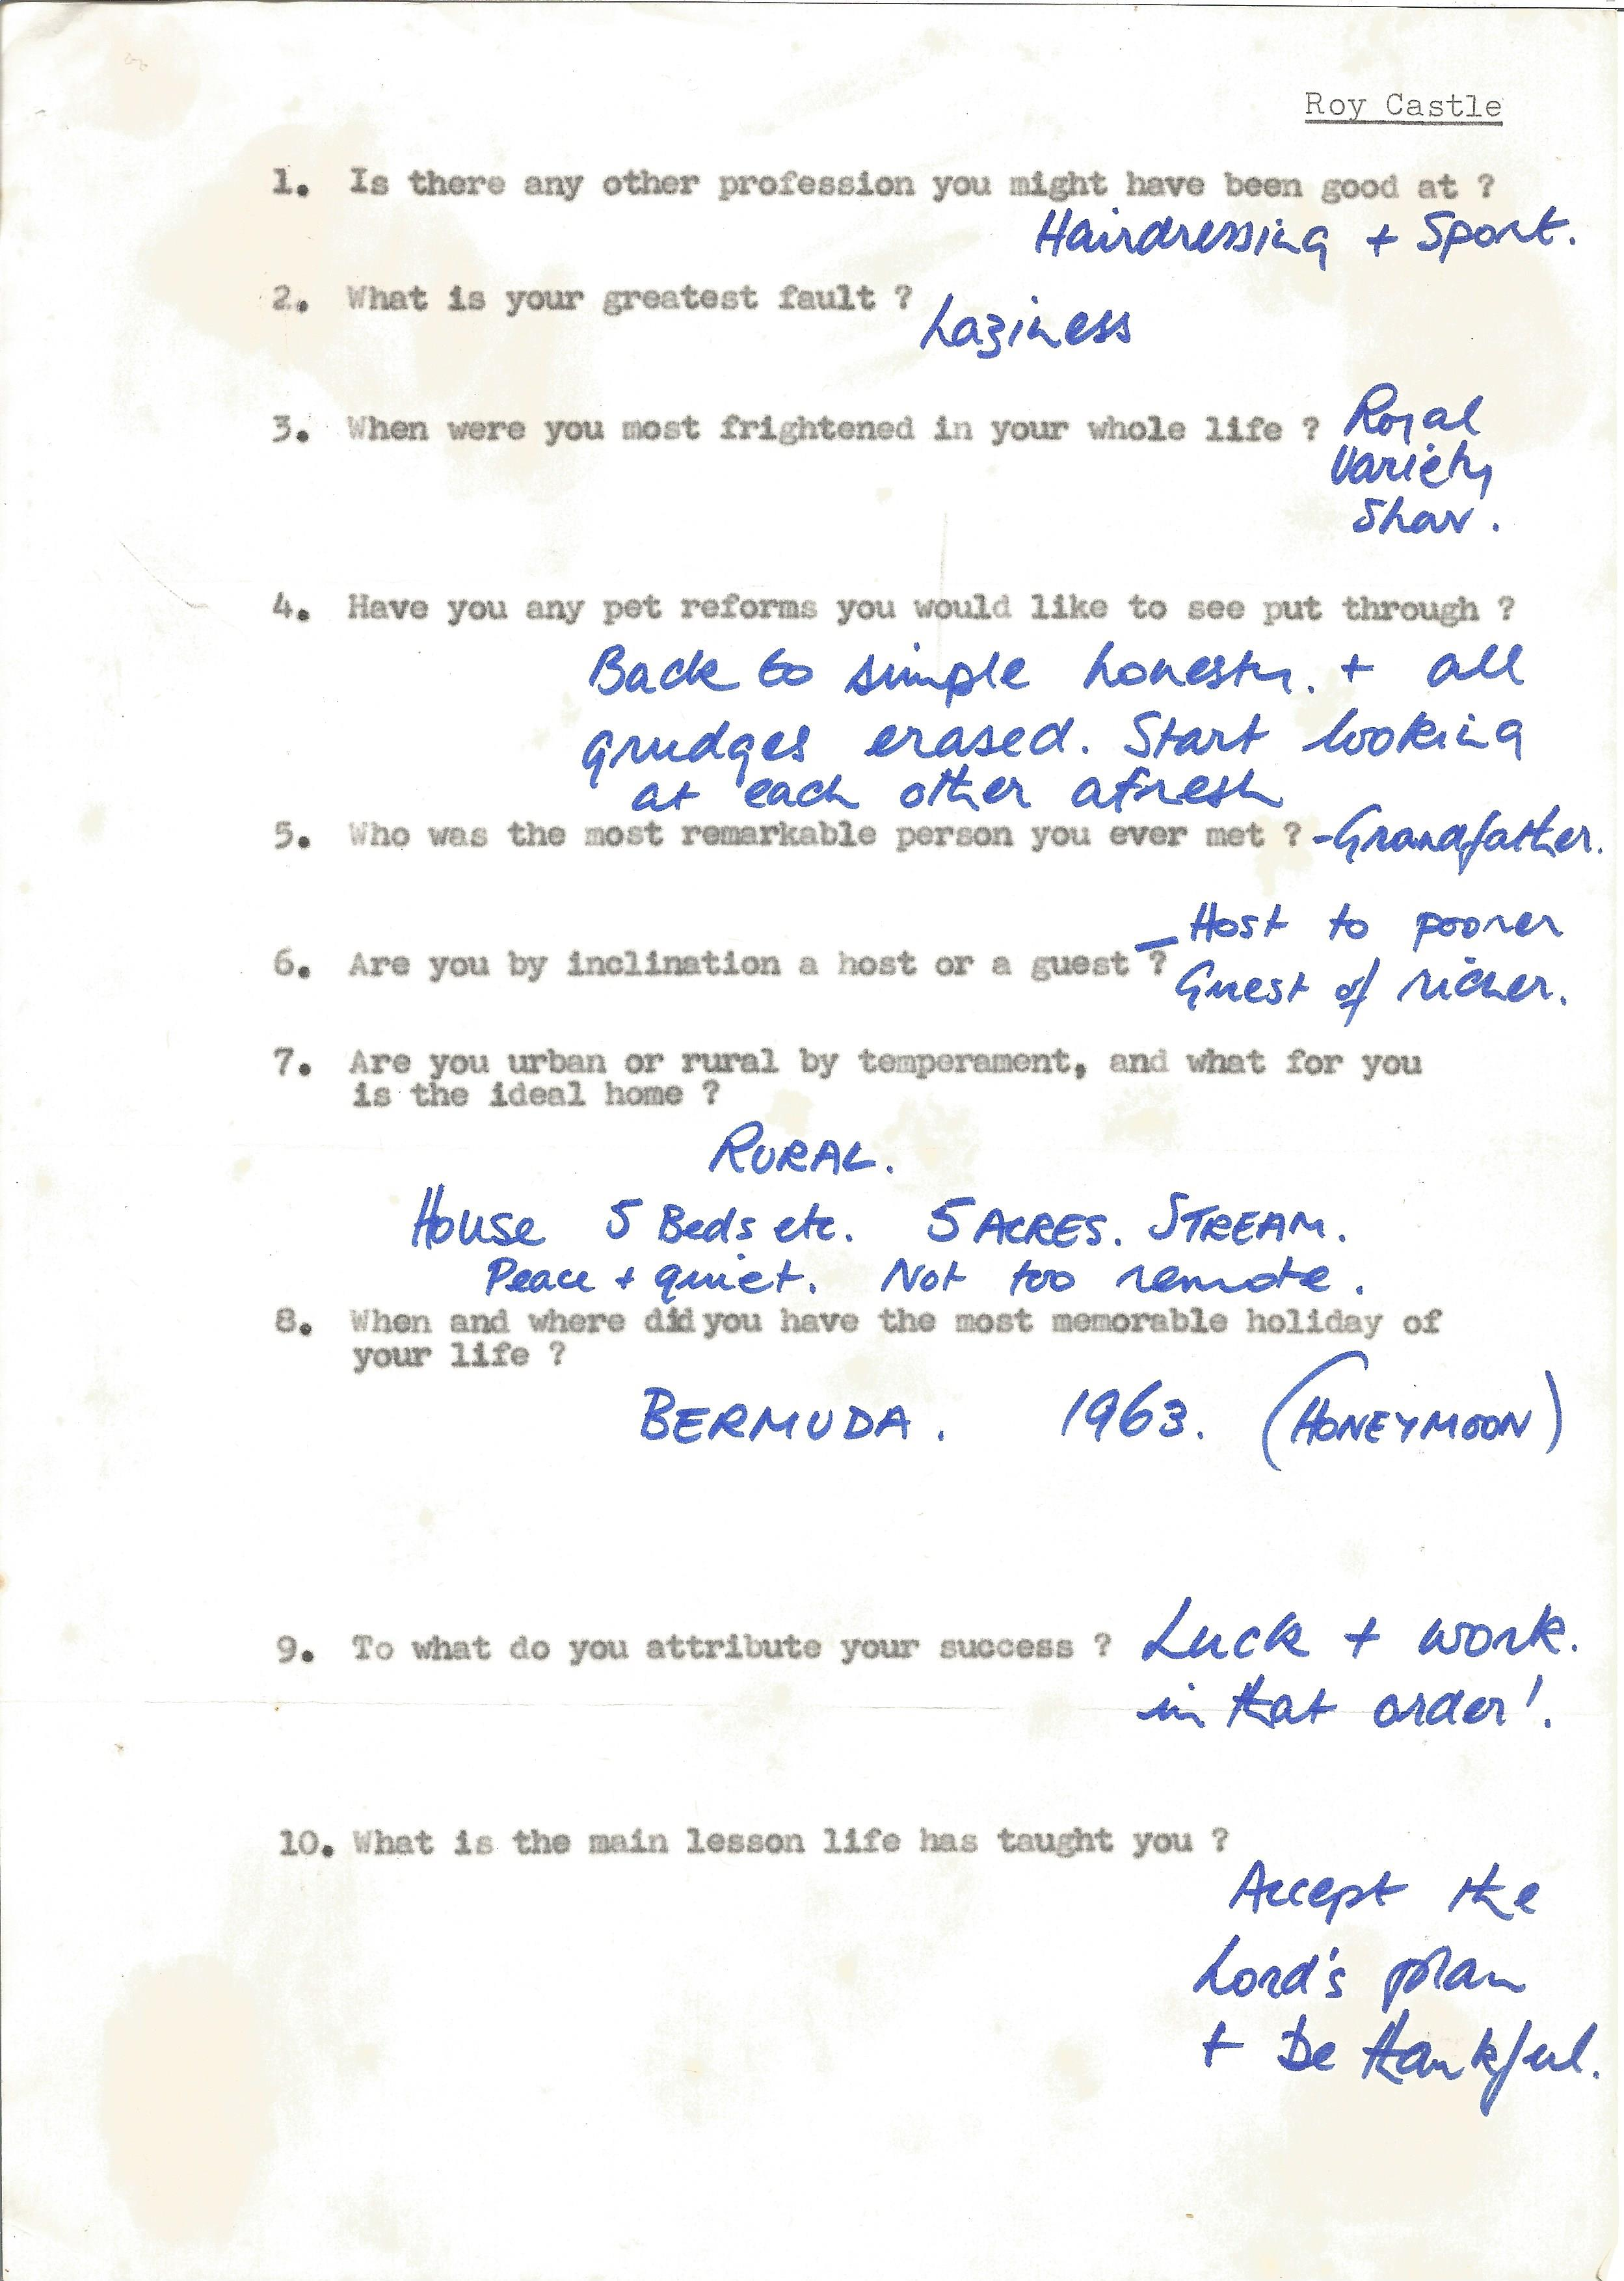 Entertainer Roy Castle, brief handwritten replies on a questionnaire from a fan asking a variety